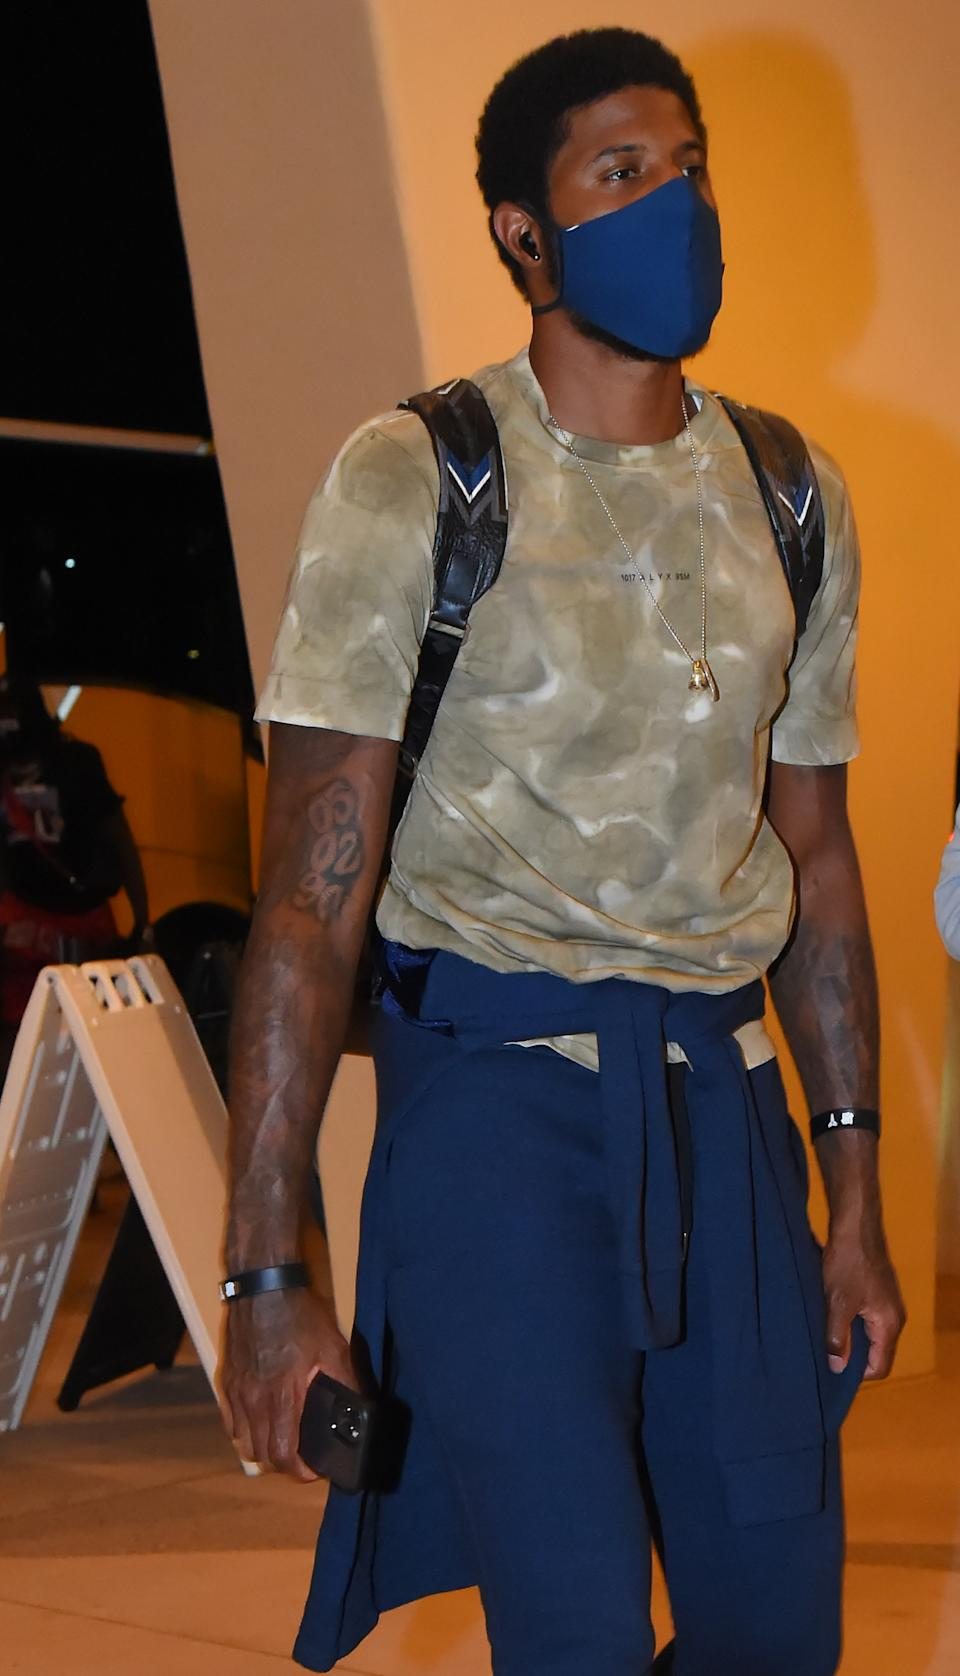 Paul George of the LA Clippers arrives at the hotel as part of the NBA Restart 2020 on July 8, 2020 in Orlando, Florida. (Photo by Bill Baptist/NBAE via Getty Images)